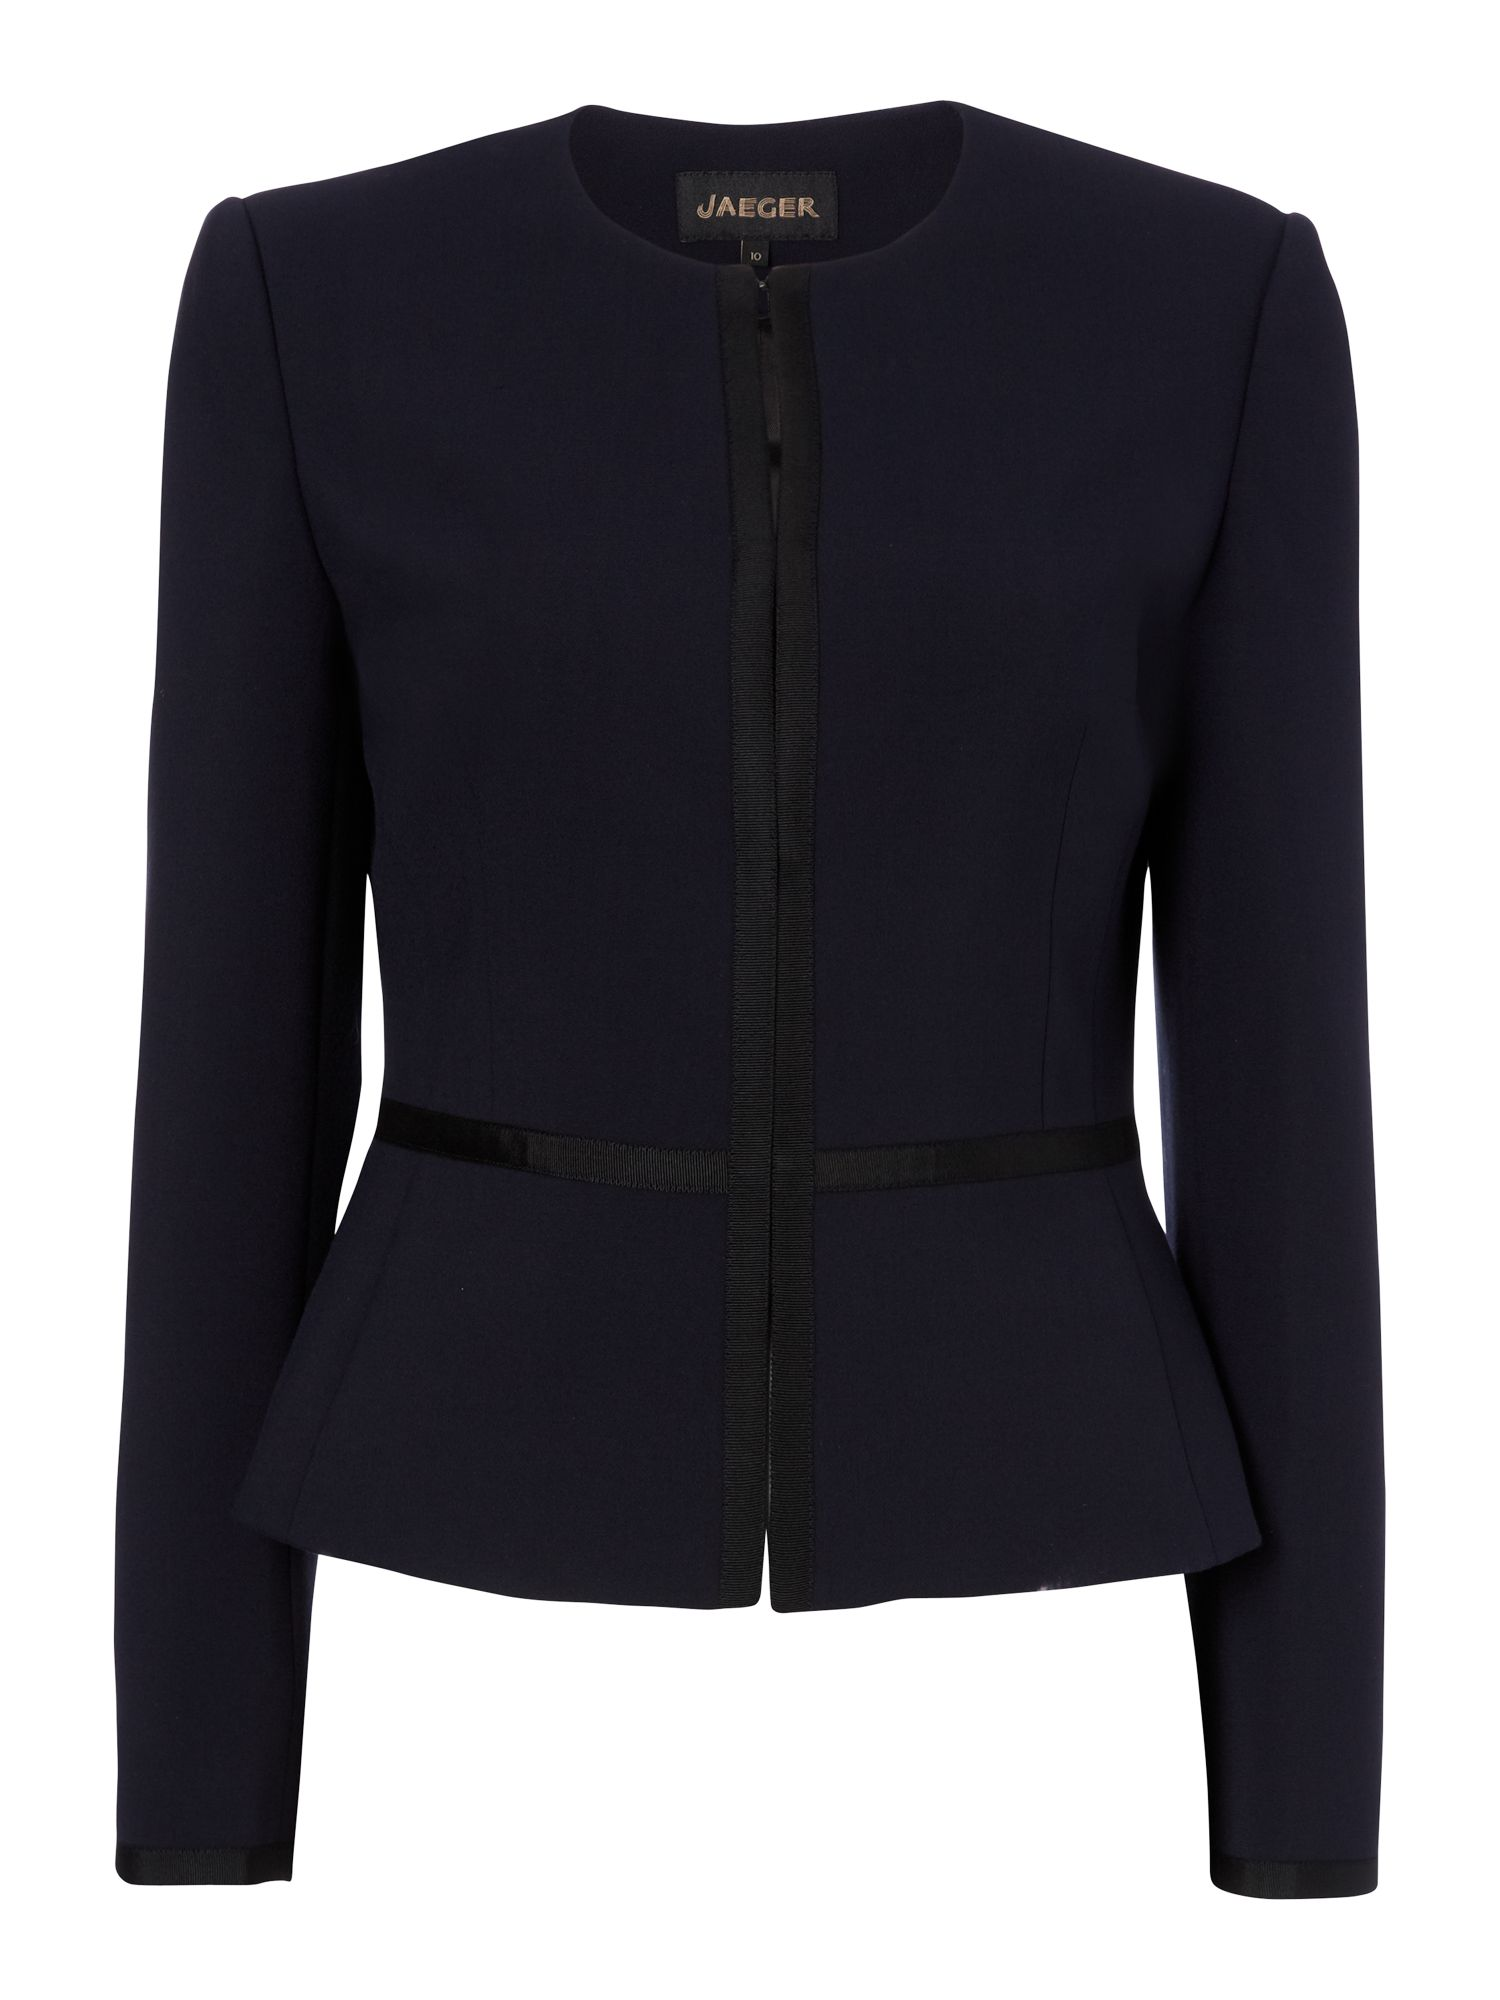 Grosgrain Trim Jacket